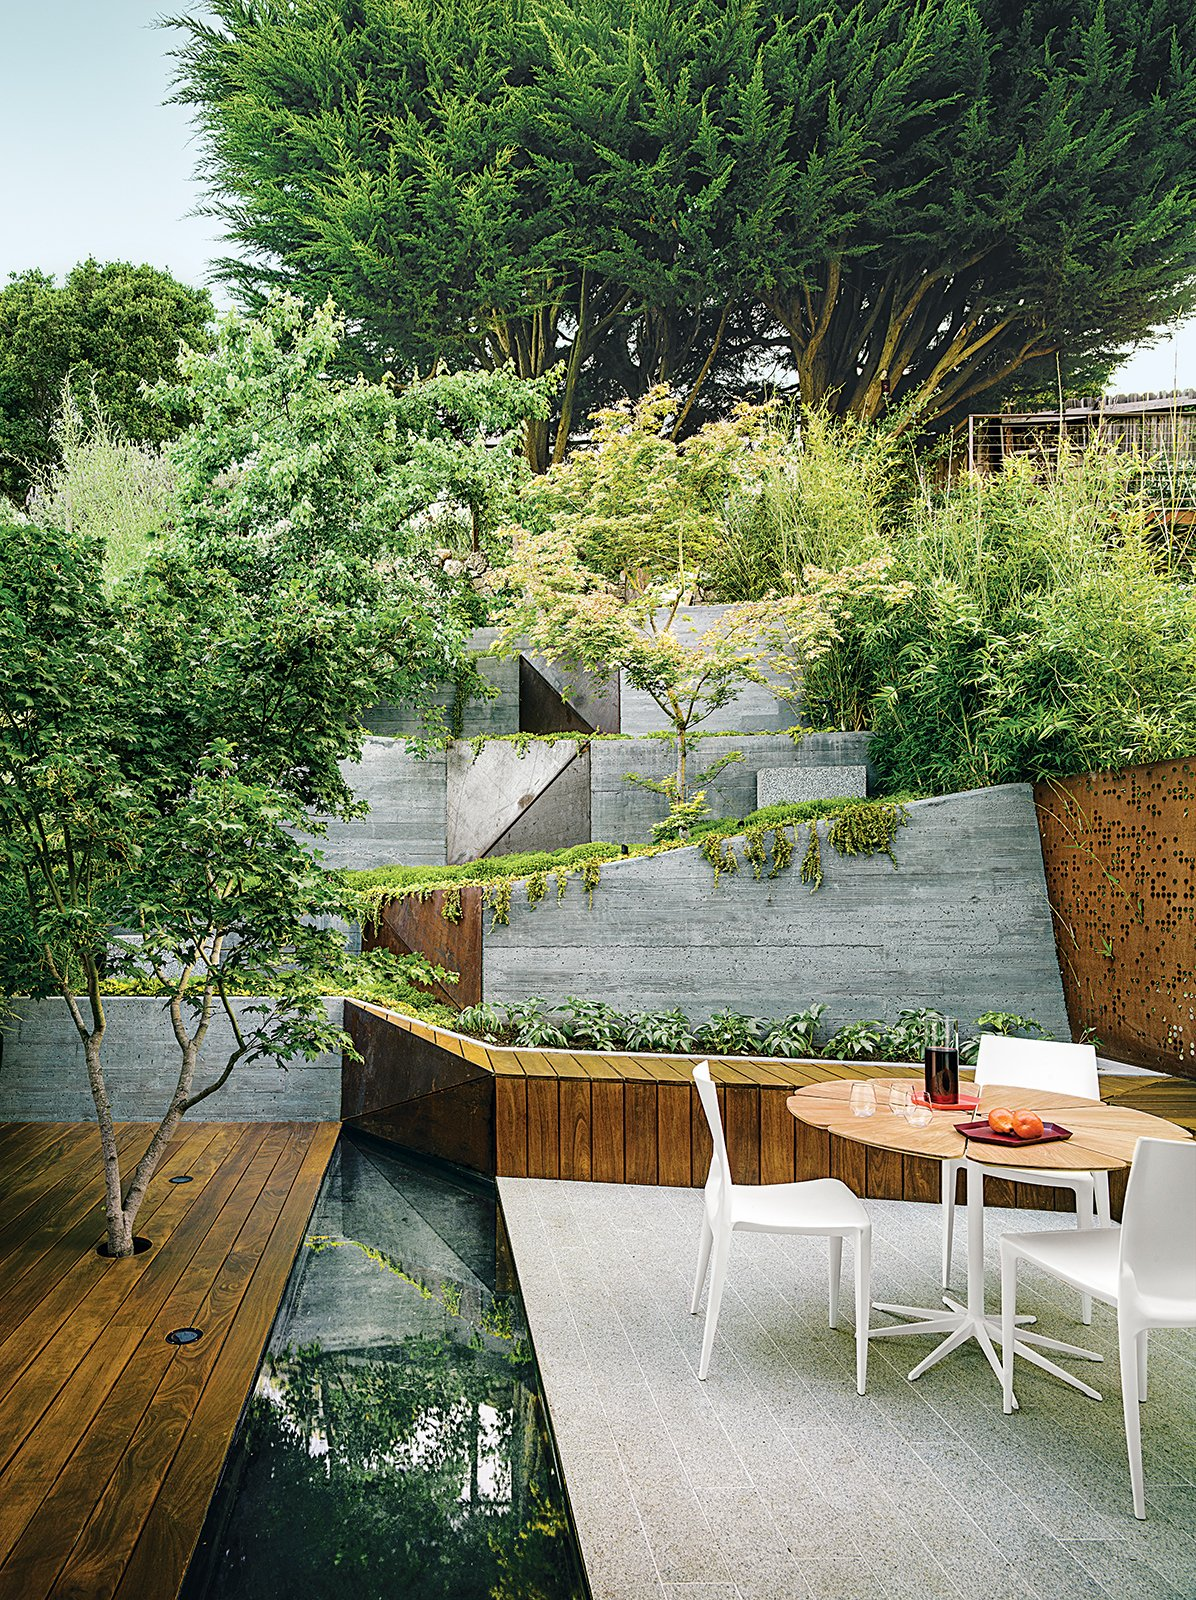 #outdoor #backyard #landscape #chair #dining #water #tree #green   Photo by Joe Fletcher  Photo 13 of 25 in 25 Blissful Backyards from Outdoor